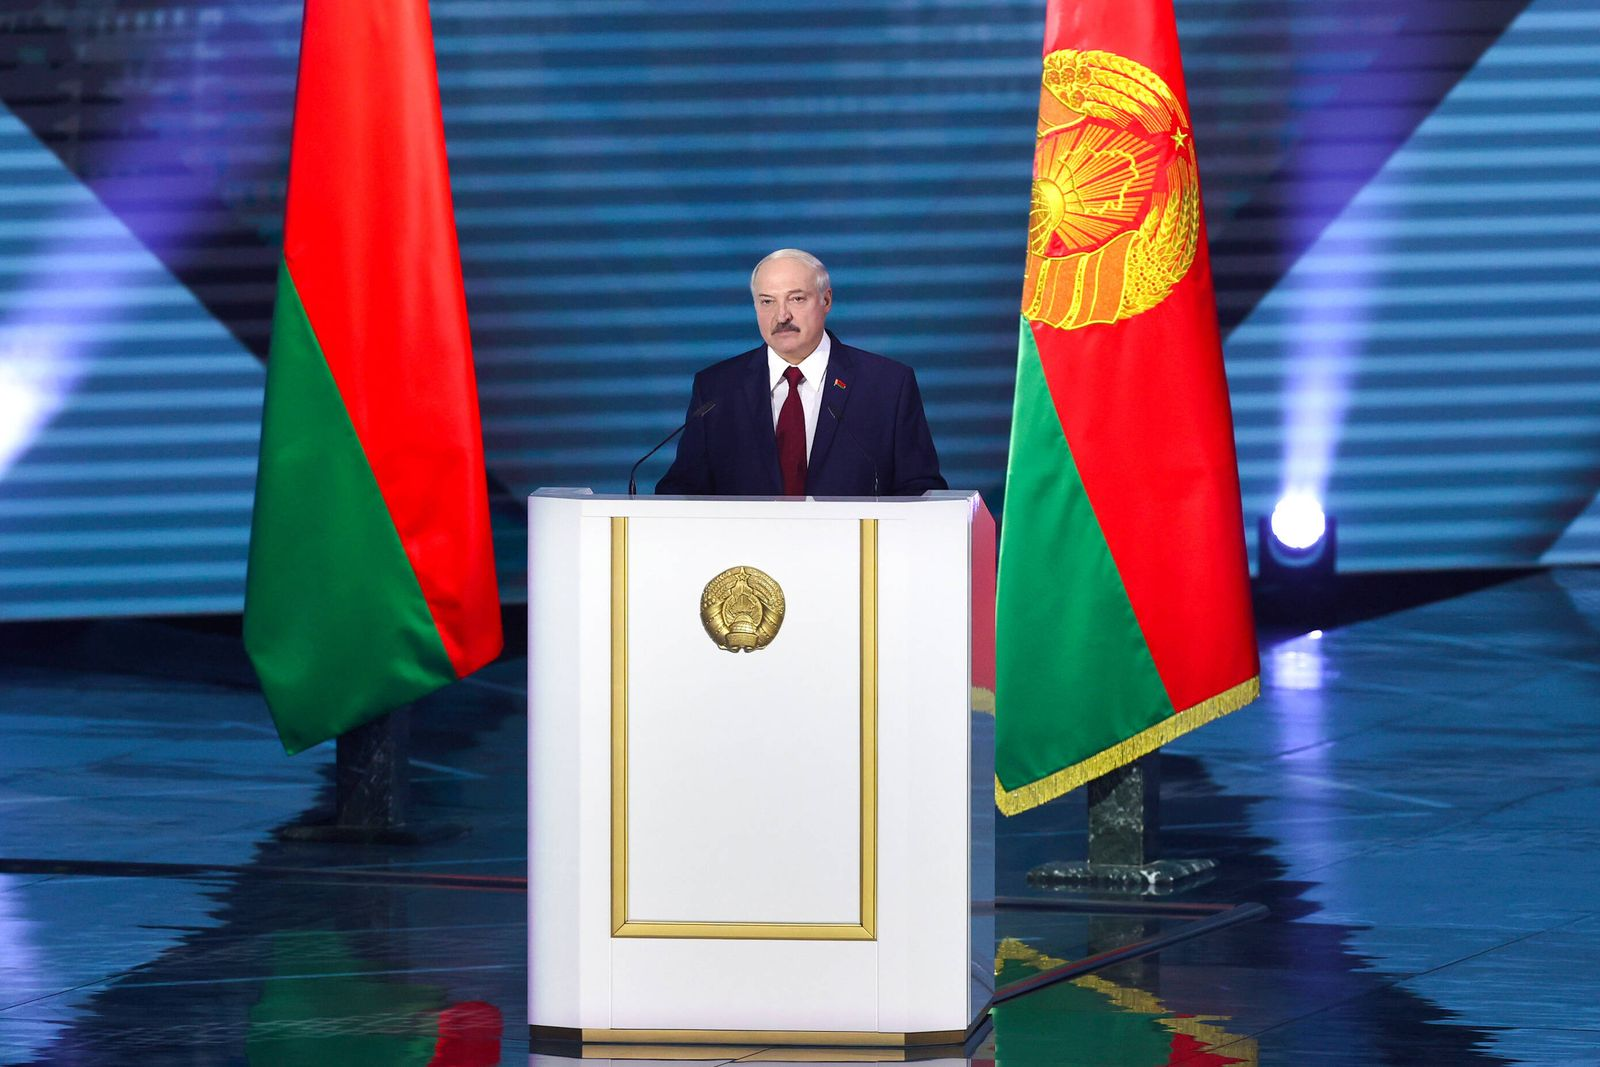 MINSK, BELARUS - AUGUST 4, 2020: President Alexander Lukashenko delivers his annual address to the Belarusian people an